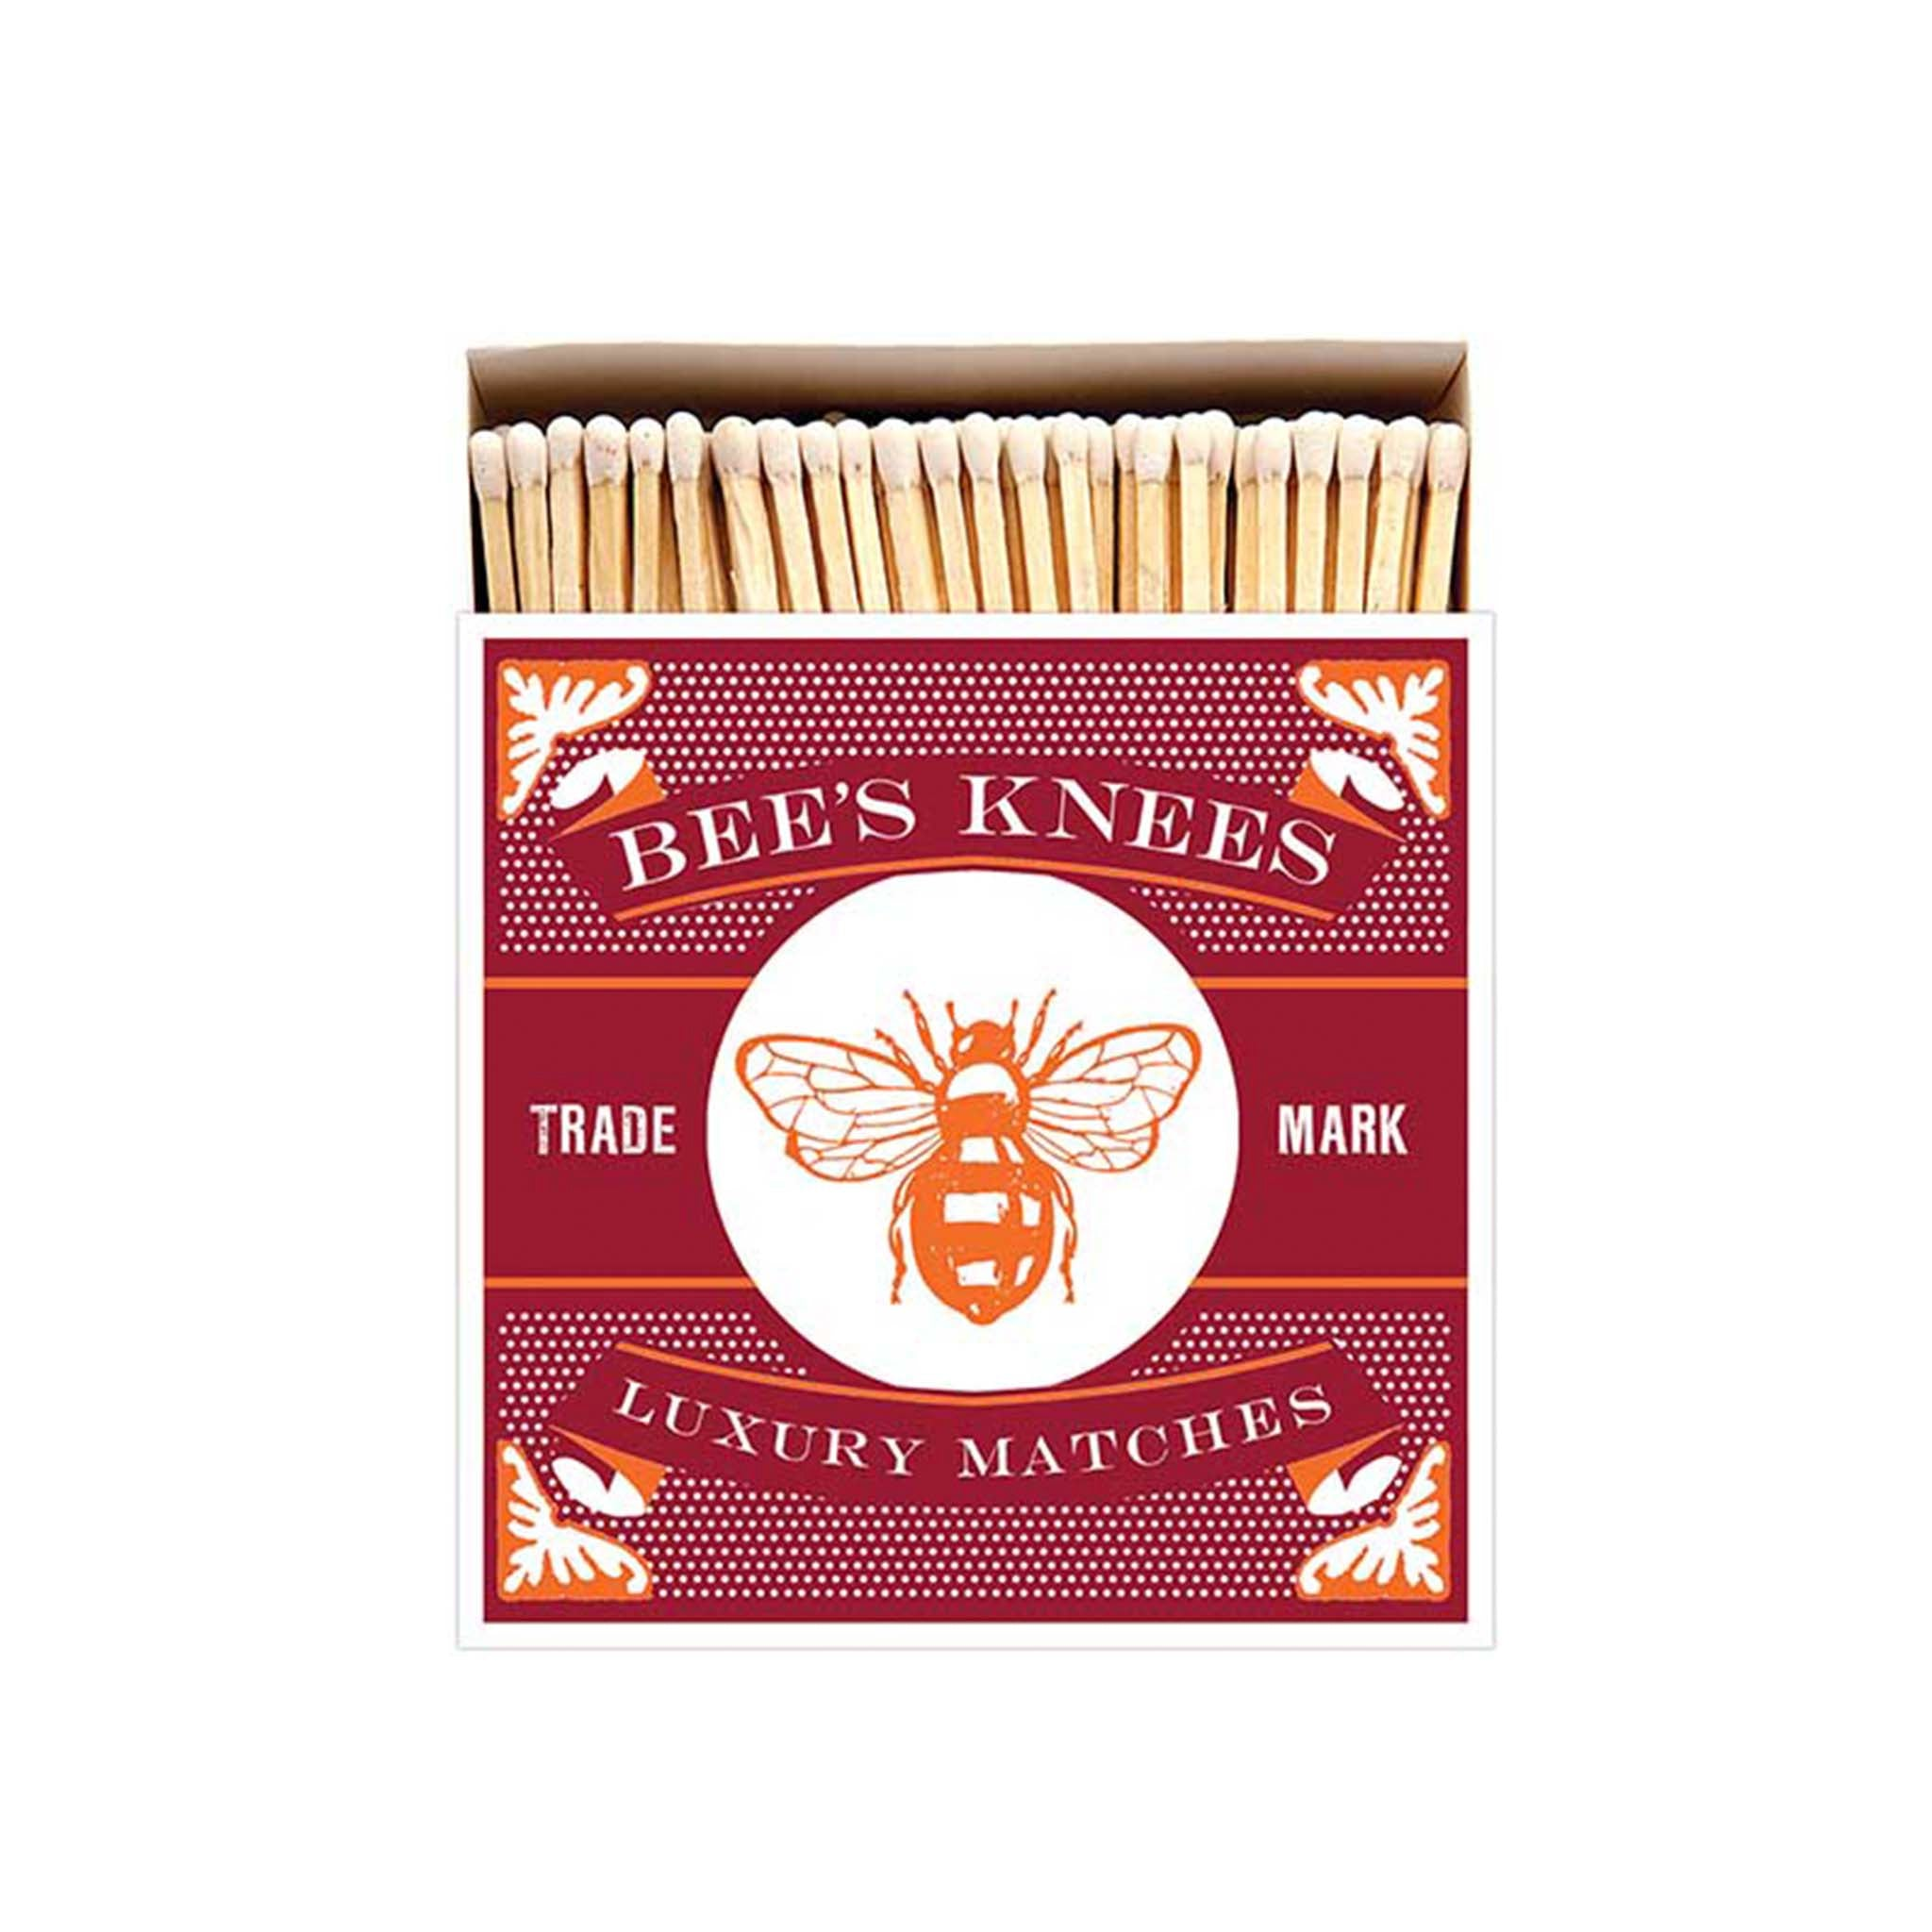 Archivist Bee's Knees Luxury Safety Matches Cookware Household & Cleaning